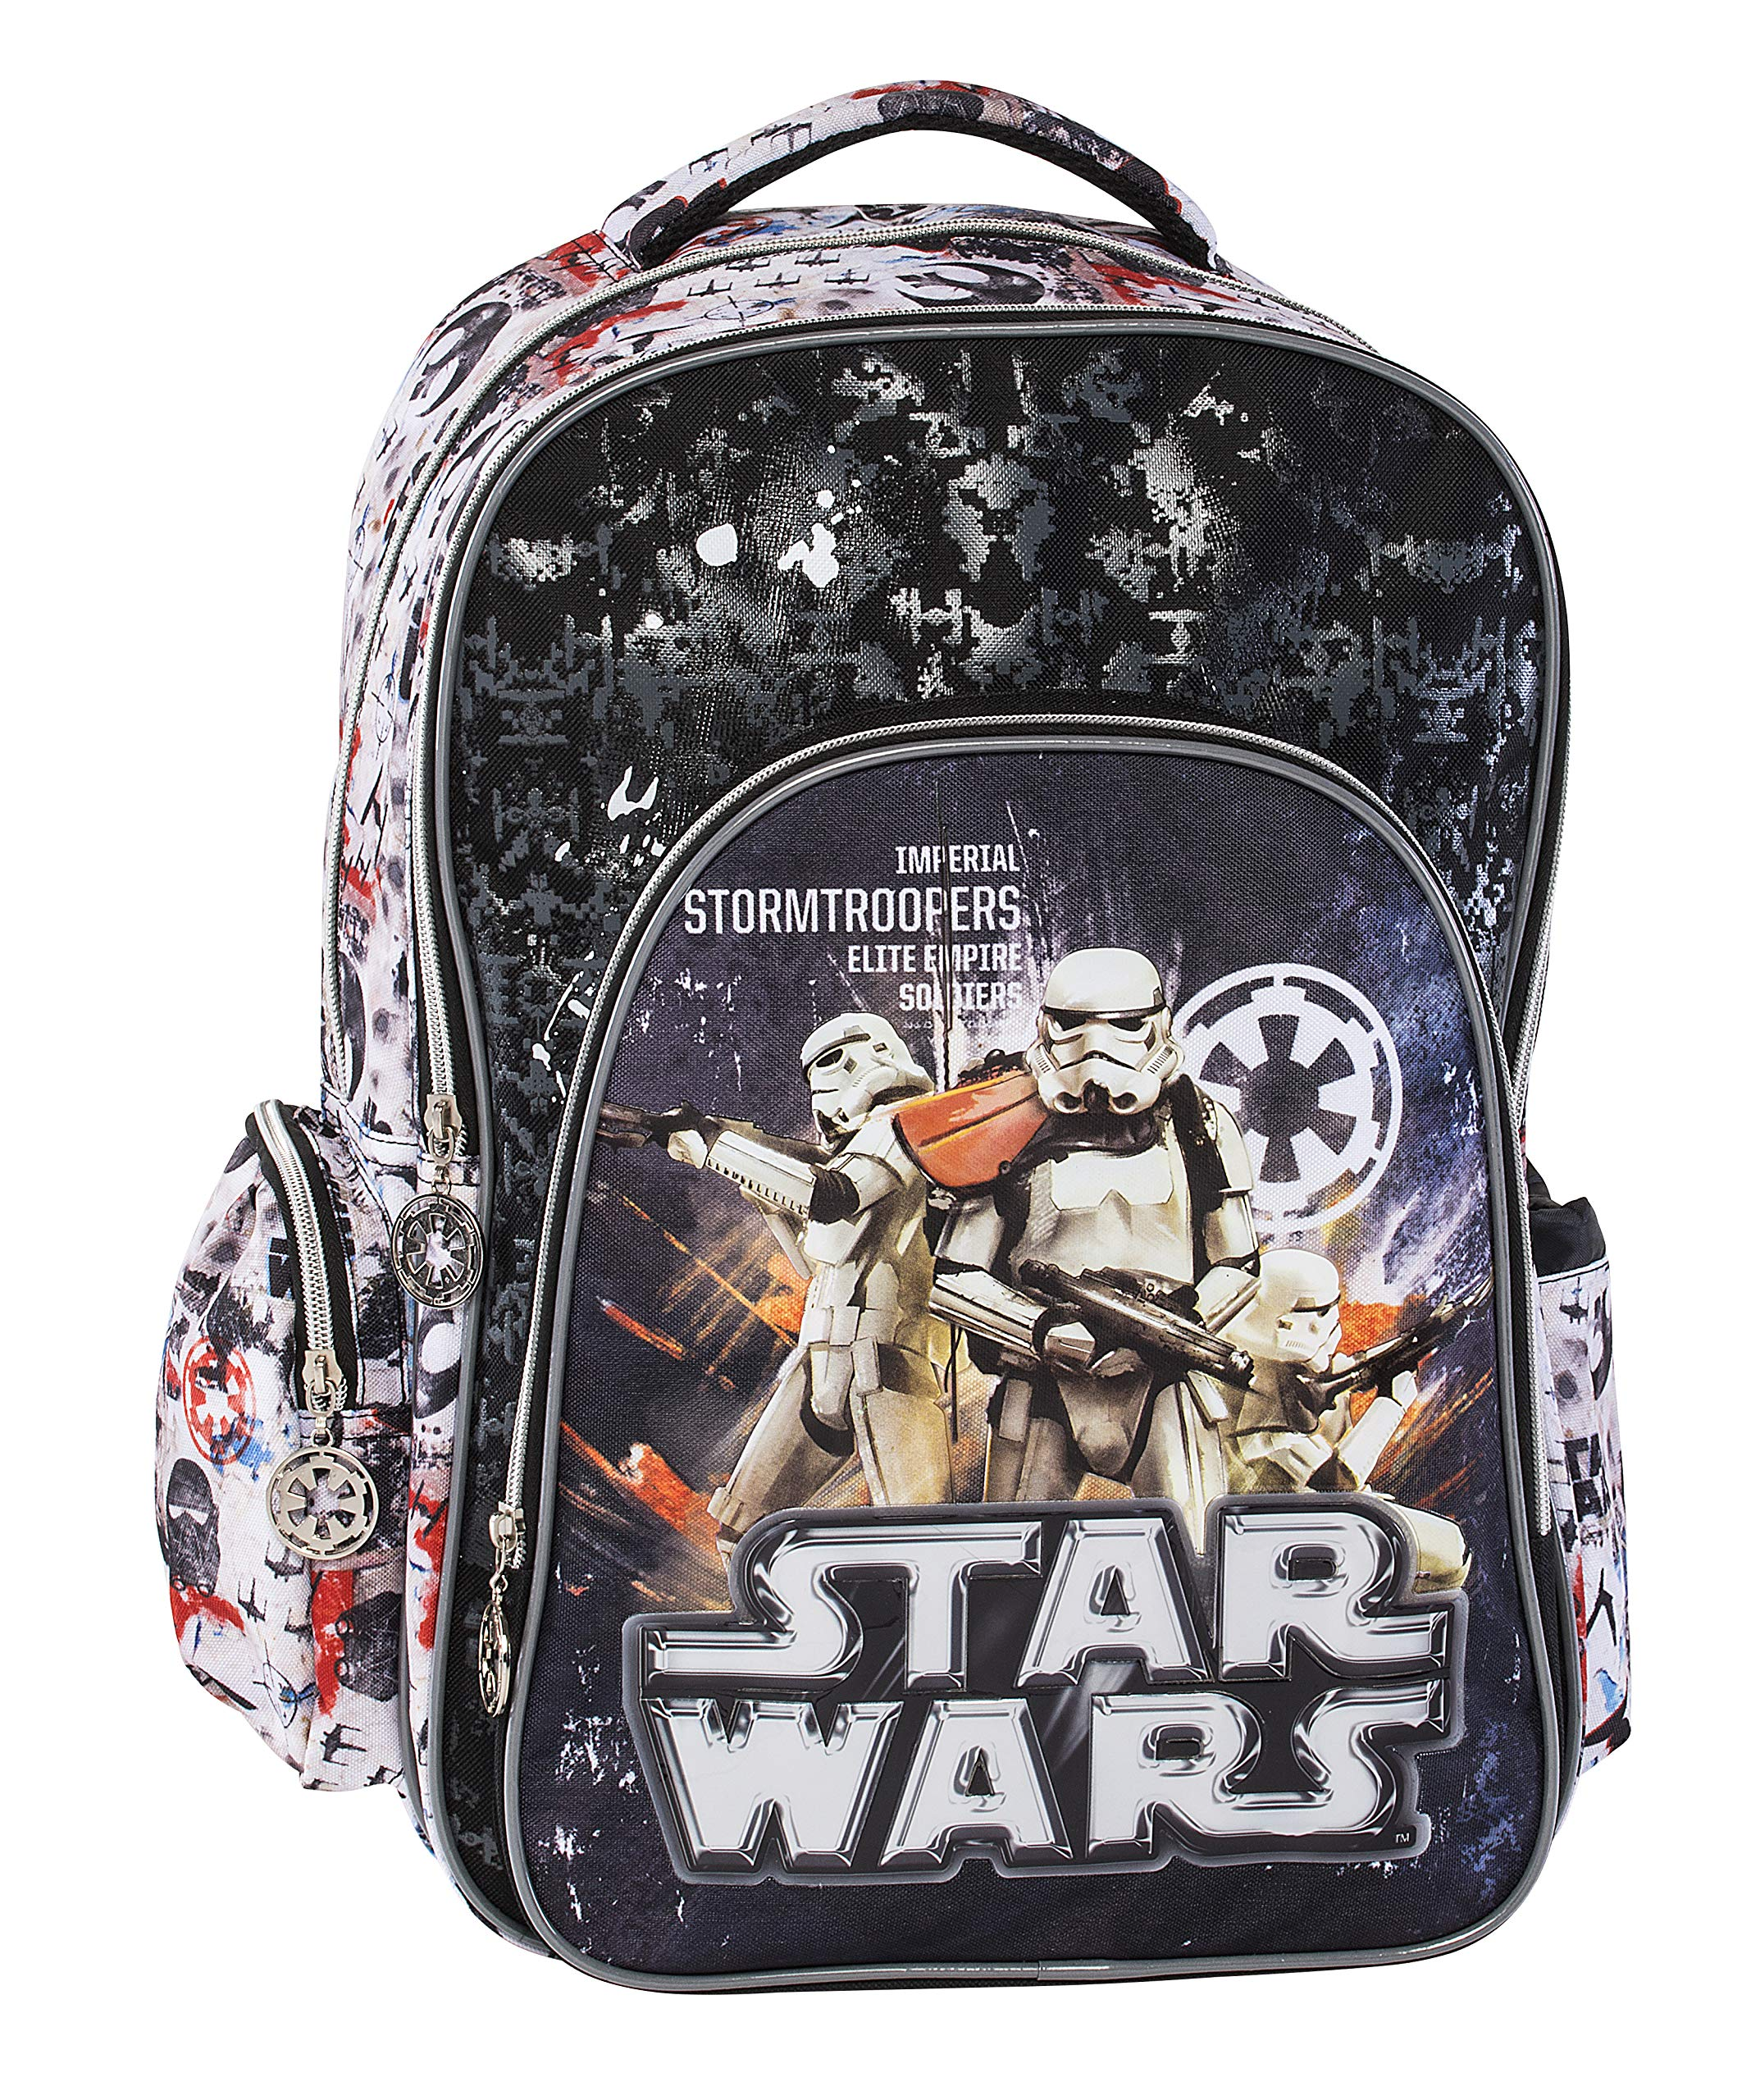 91 8wsaI4SL - Graffiti Star Wars Mochila Escolar, 44 Centimeters